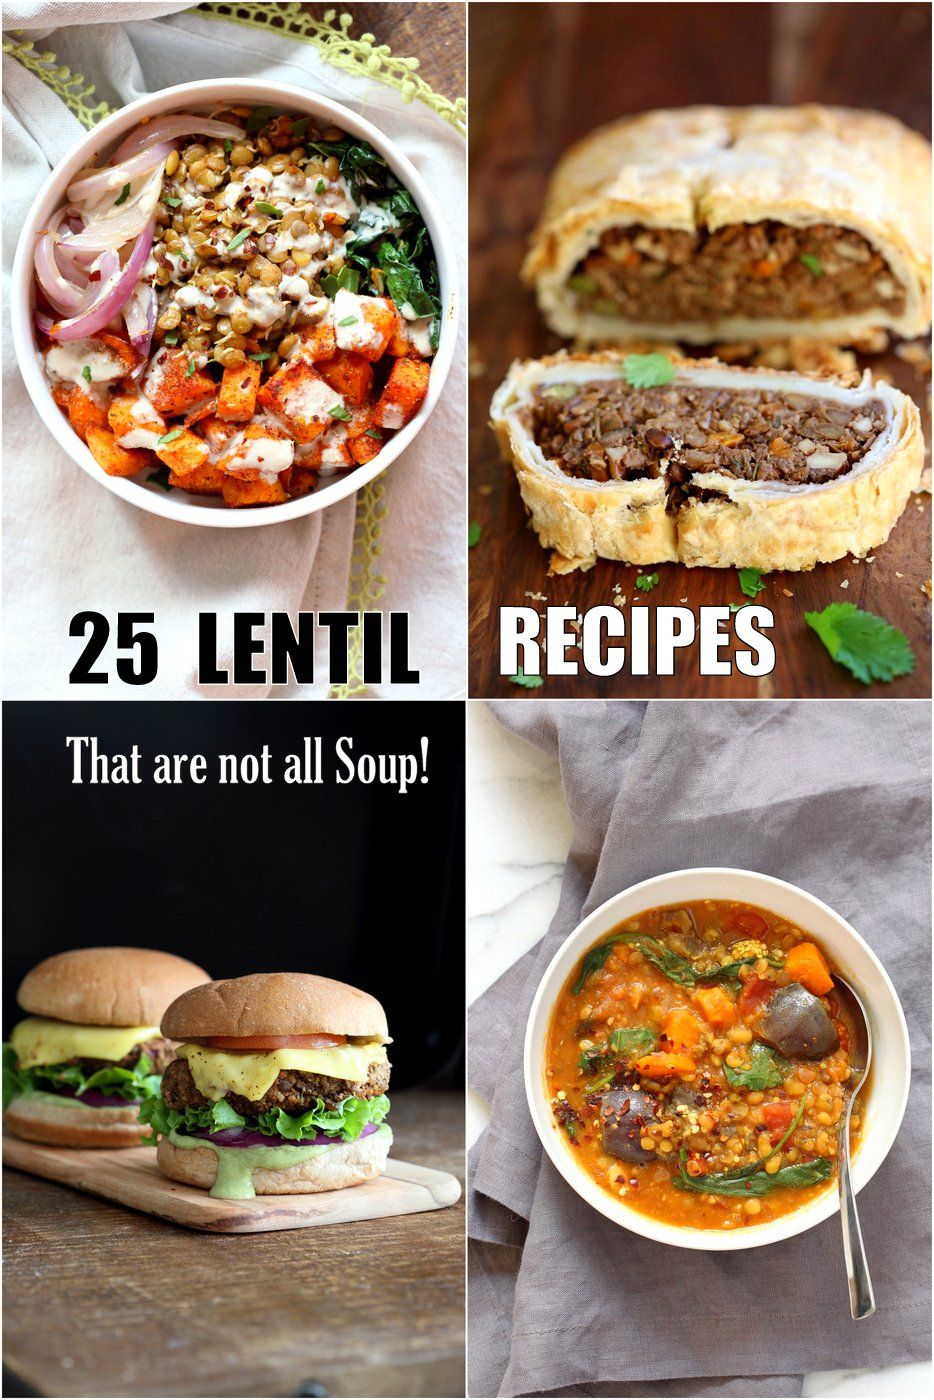 25 Easy Lentil Recipes that are not all Lentil Soup 25 Easy Lentil Recipes that are not all Lentil Soup. Brown, green, Red Lentils in Bowls, tacos, Soups, enchiladas, sloppy sandwiches, lentil fritters, burger patties, casseroles and more. Vegan options